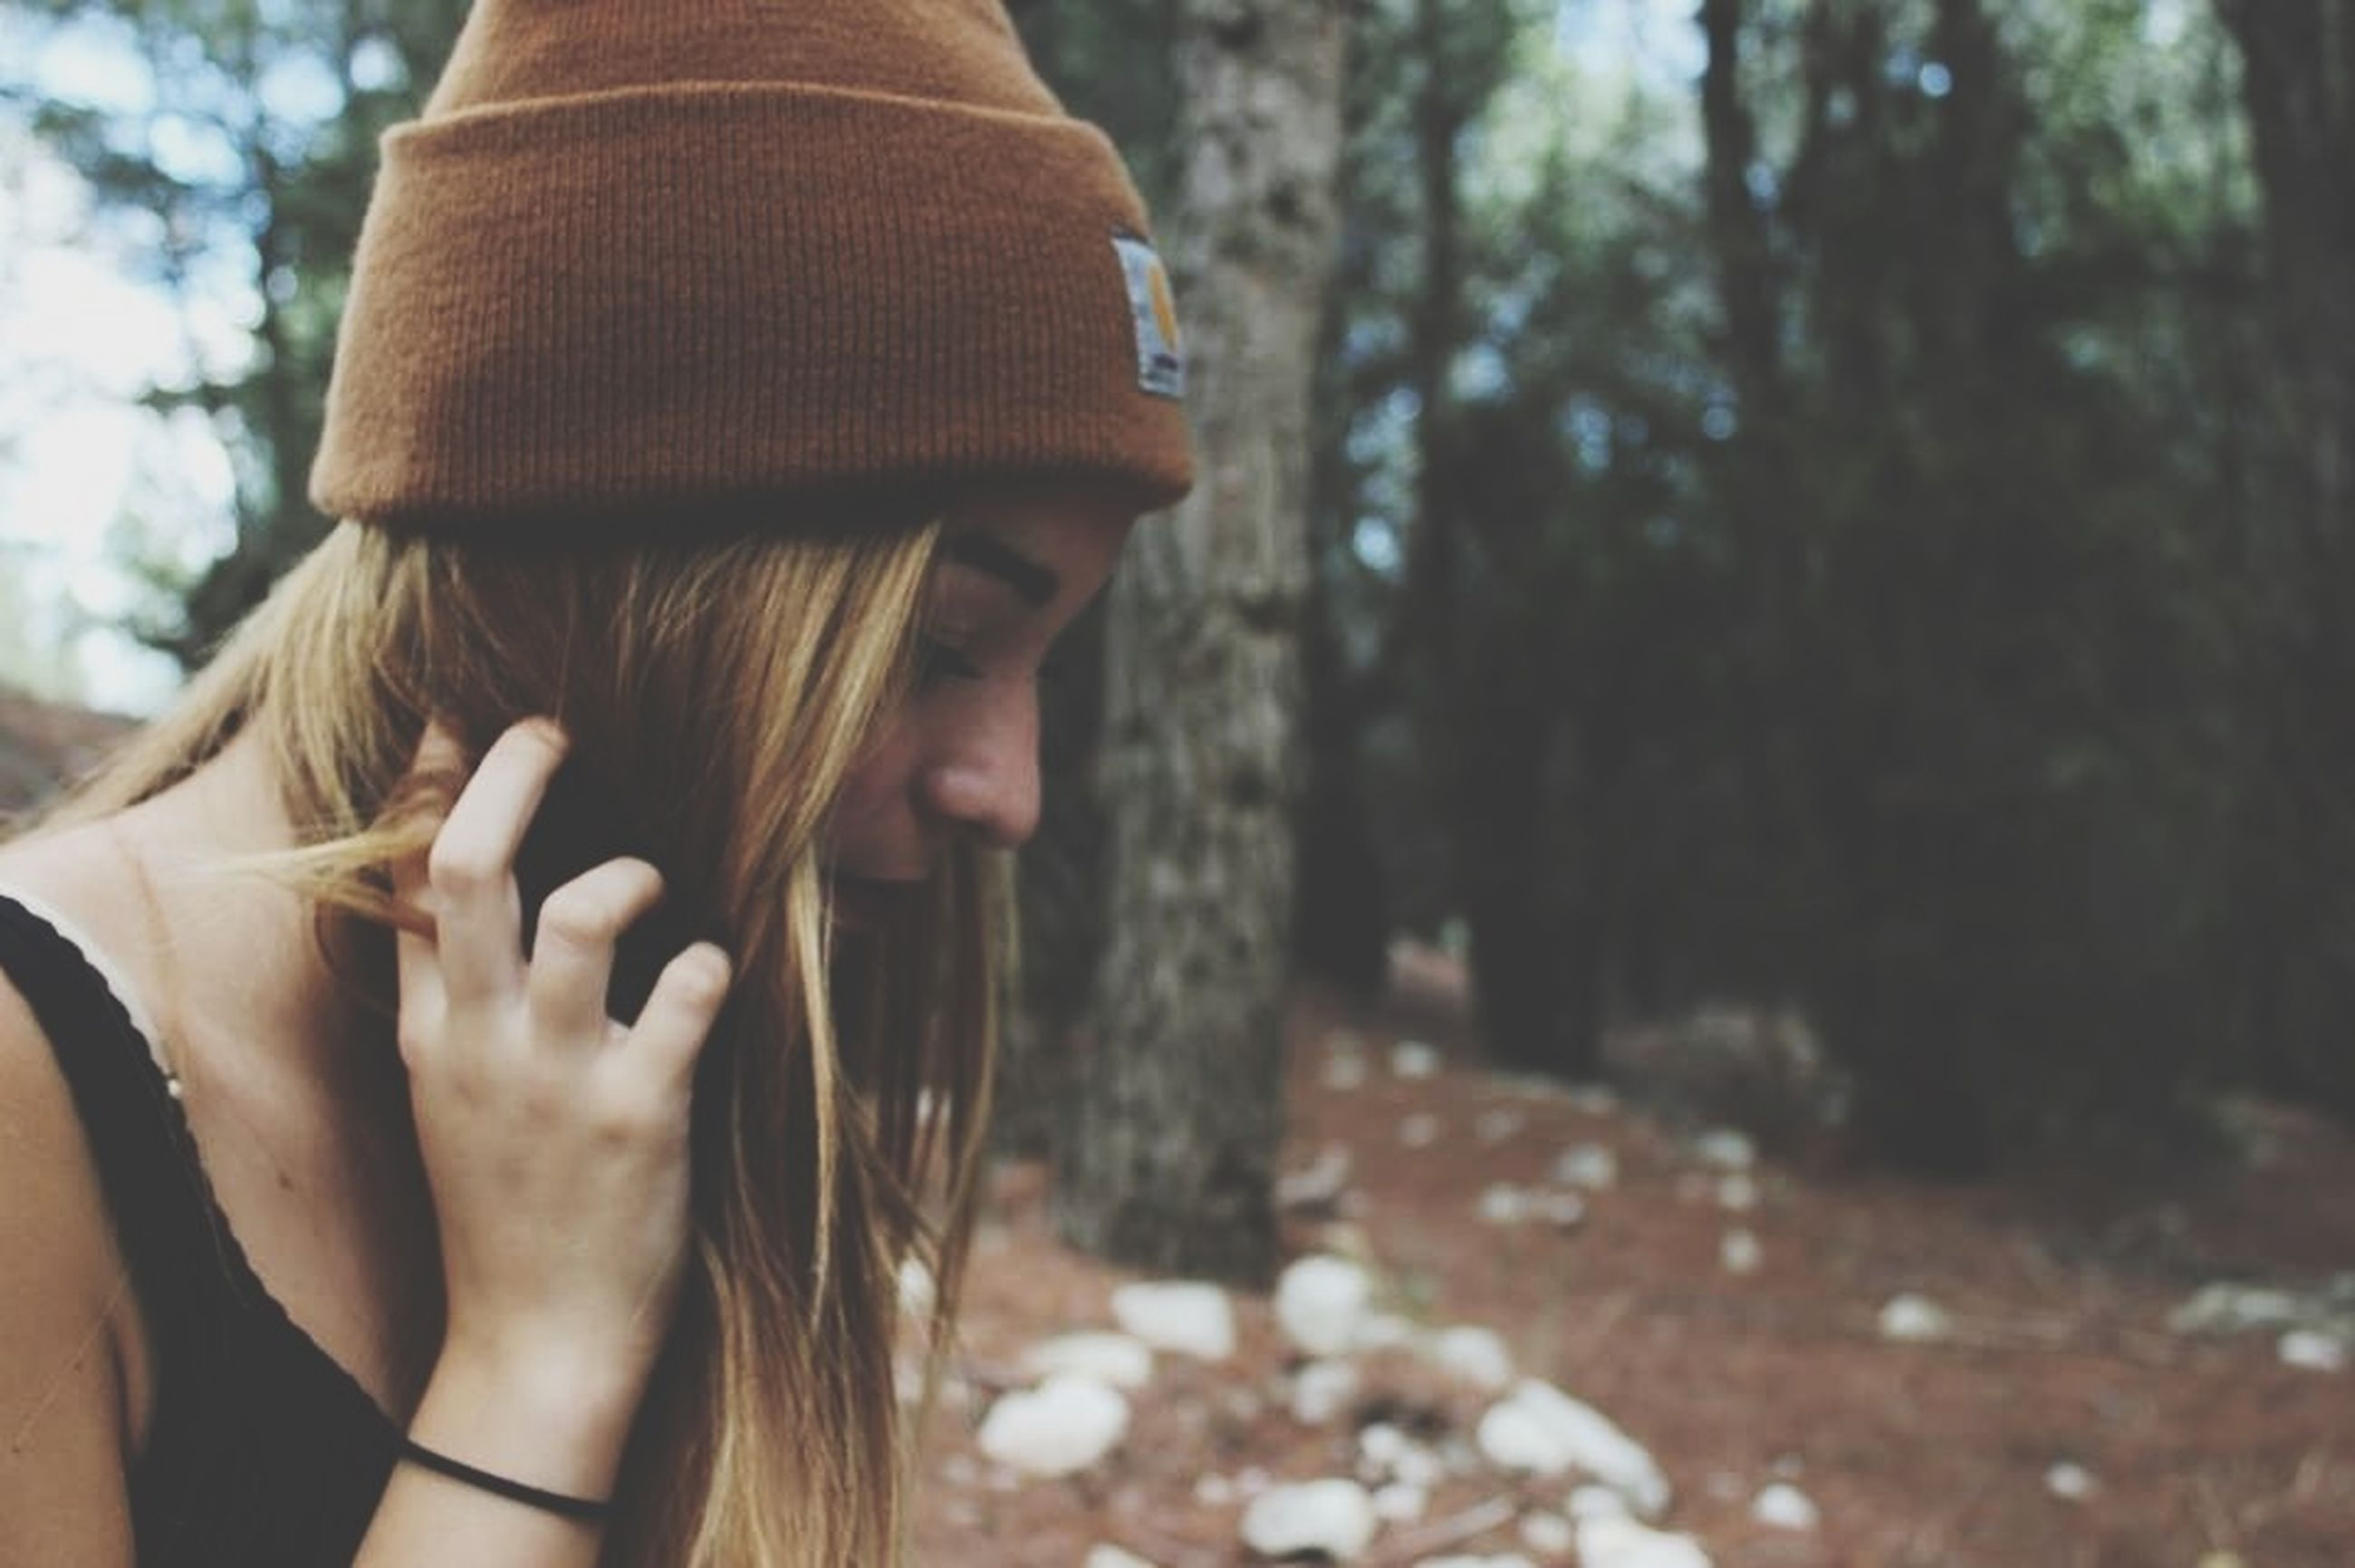 lifestyles, focus on foreground, leisure activity, tree, person, holding, close-up, casual clothing, young adult, young women, day, tree trunk, outdoors, park - man made space, rear view, hat, nature